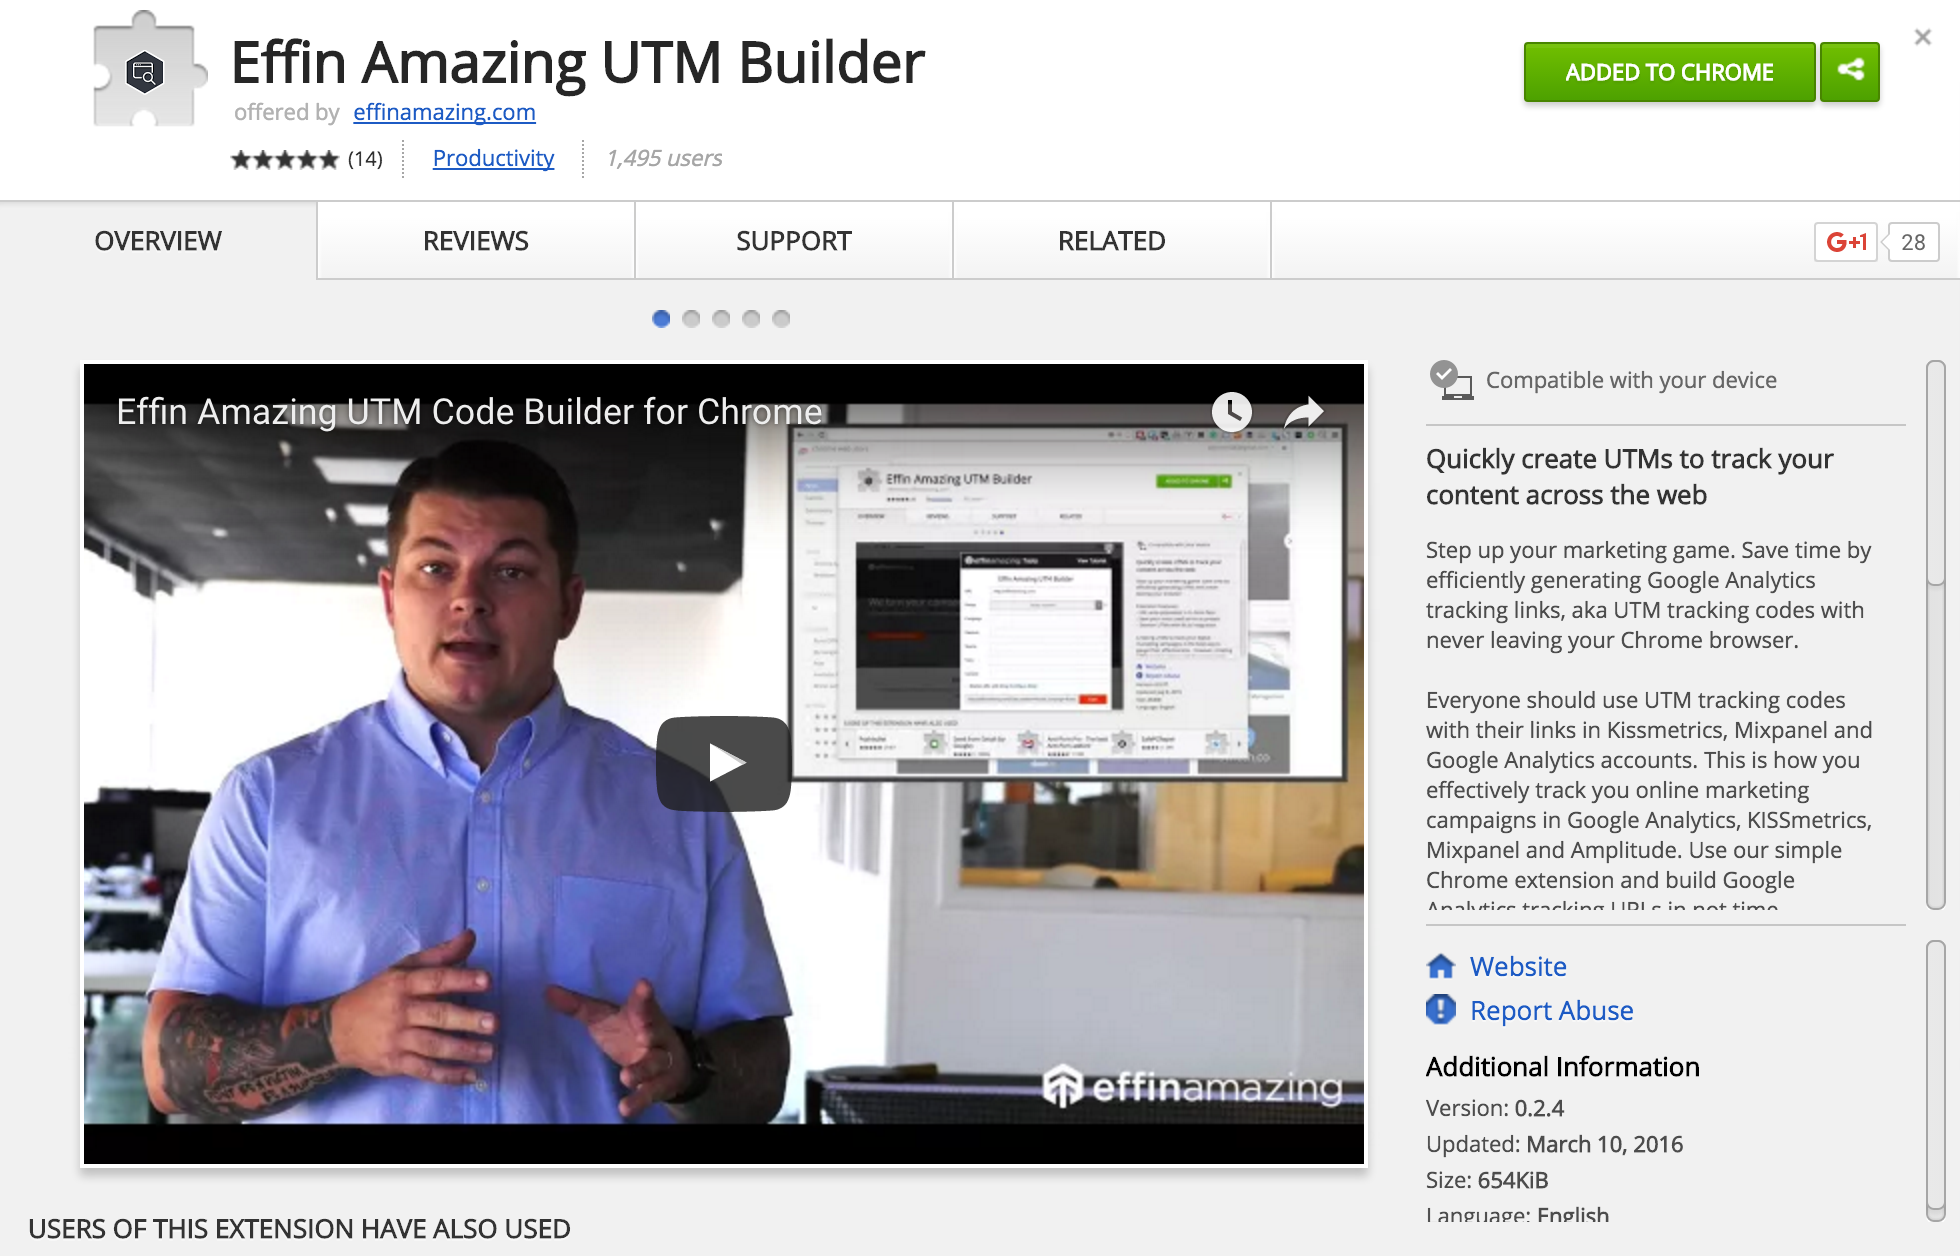 Just Launched: Effin Amazing UTM Tool, Introducing Google Sheets Integration for Team Collaboration